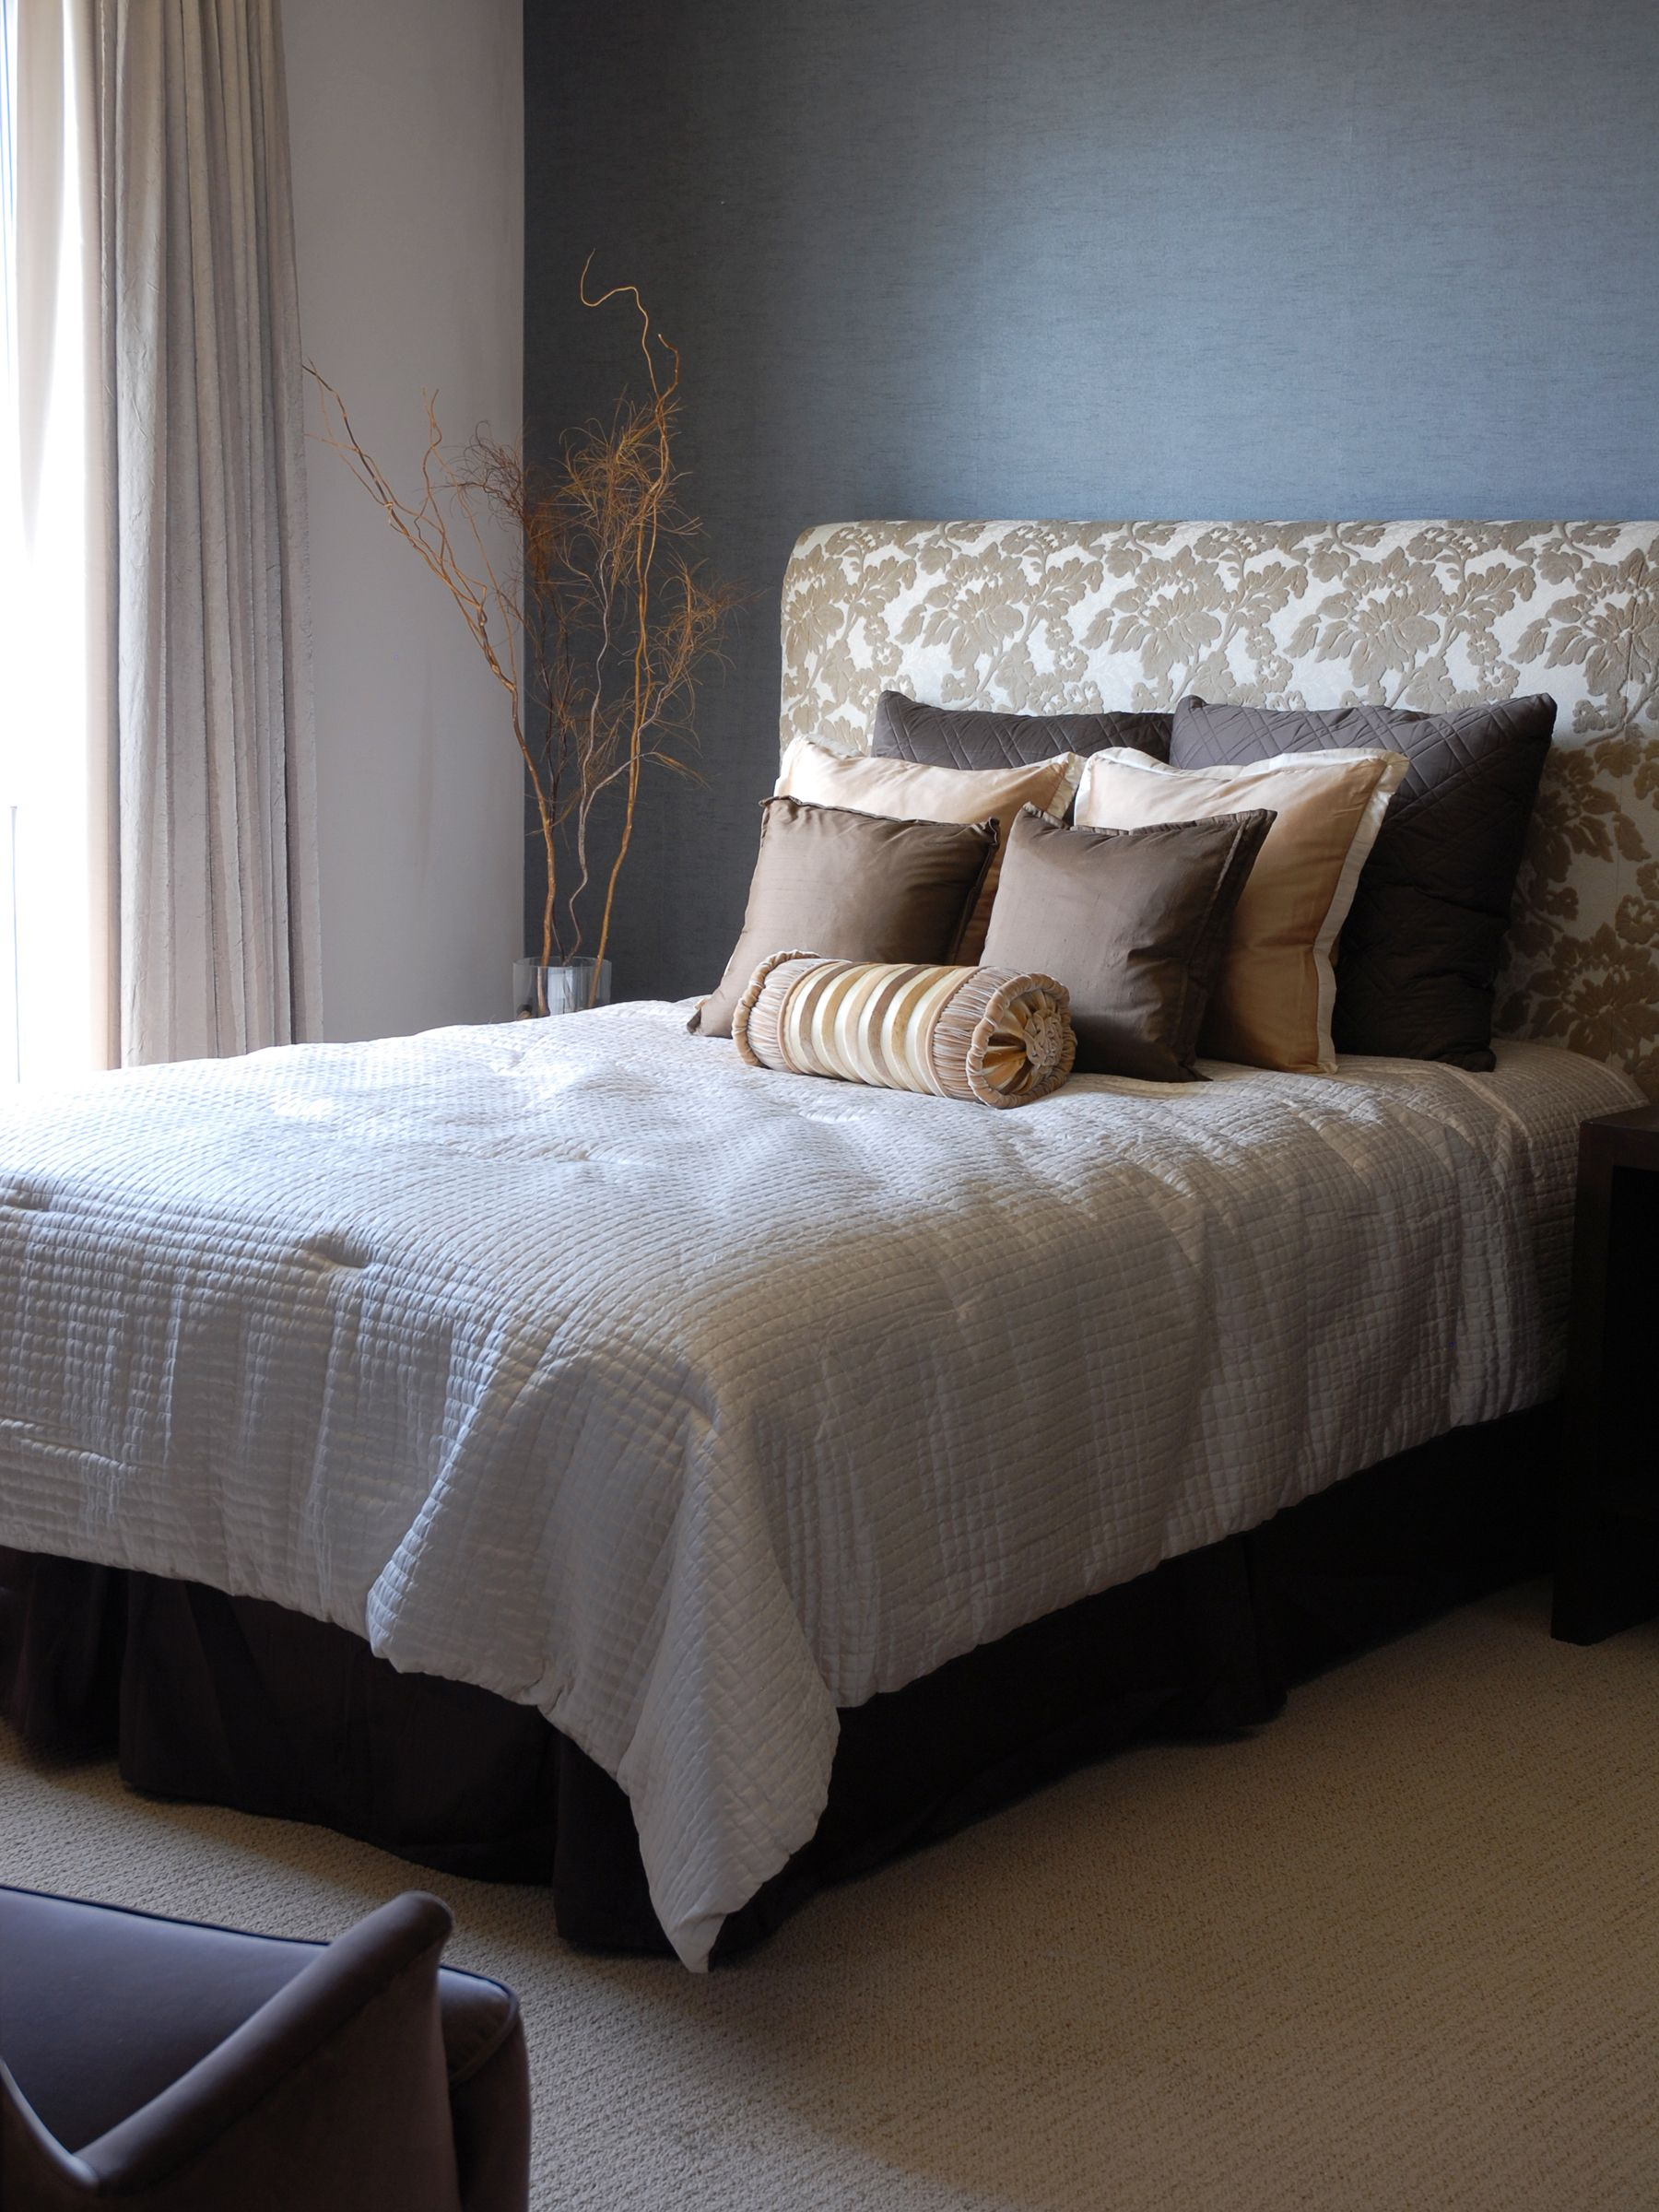 How to Make an Upholstered Headboard Modern bedroom